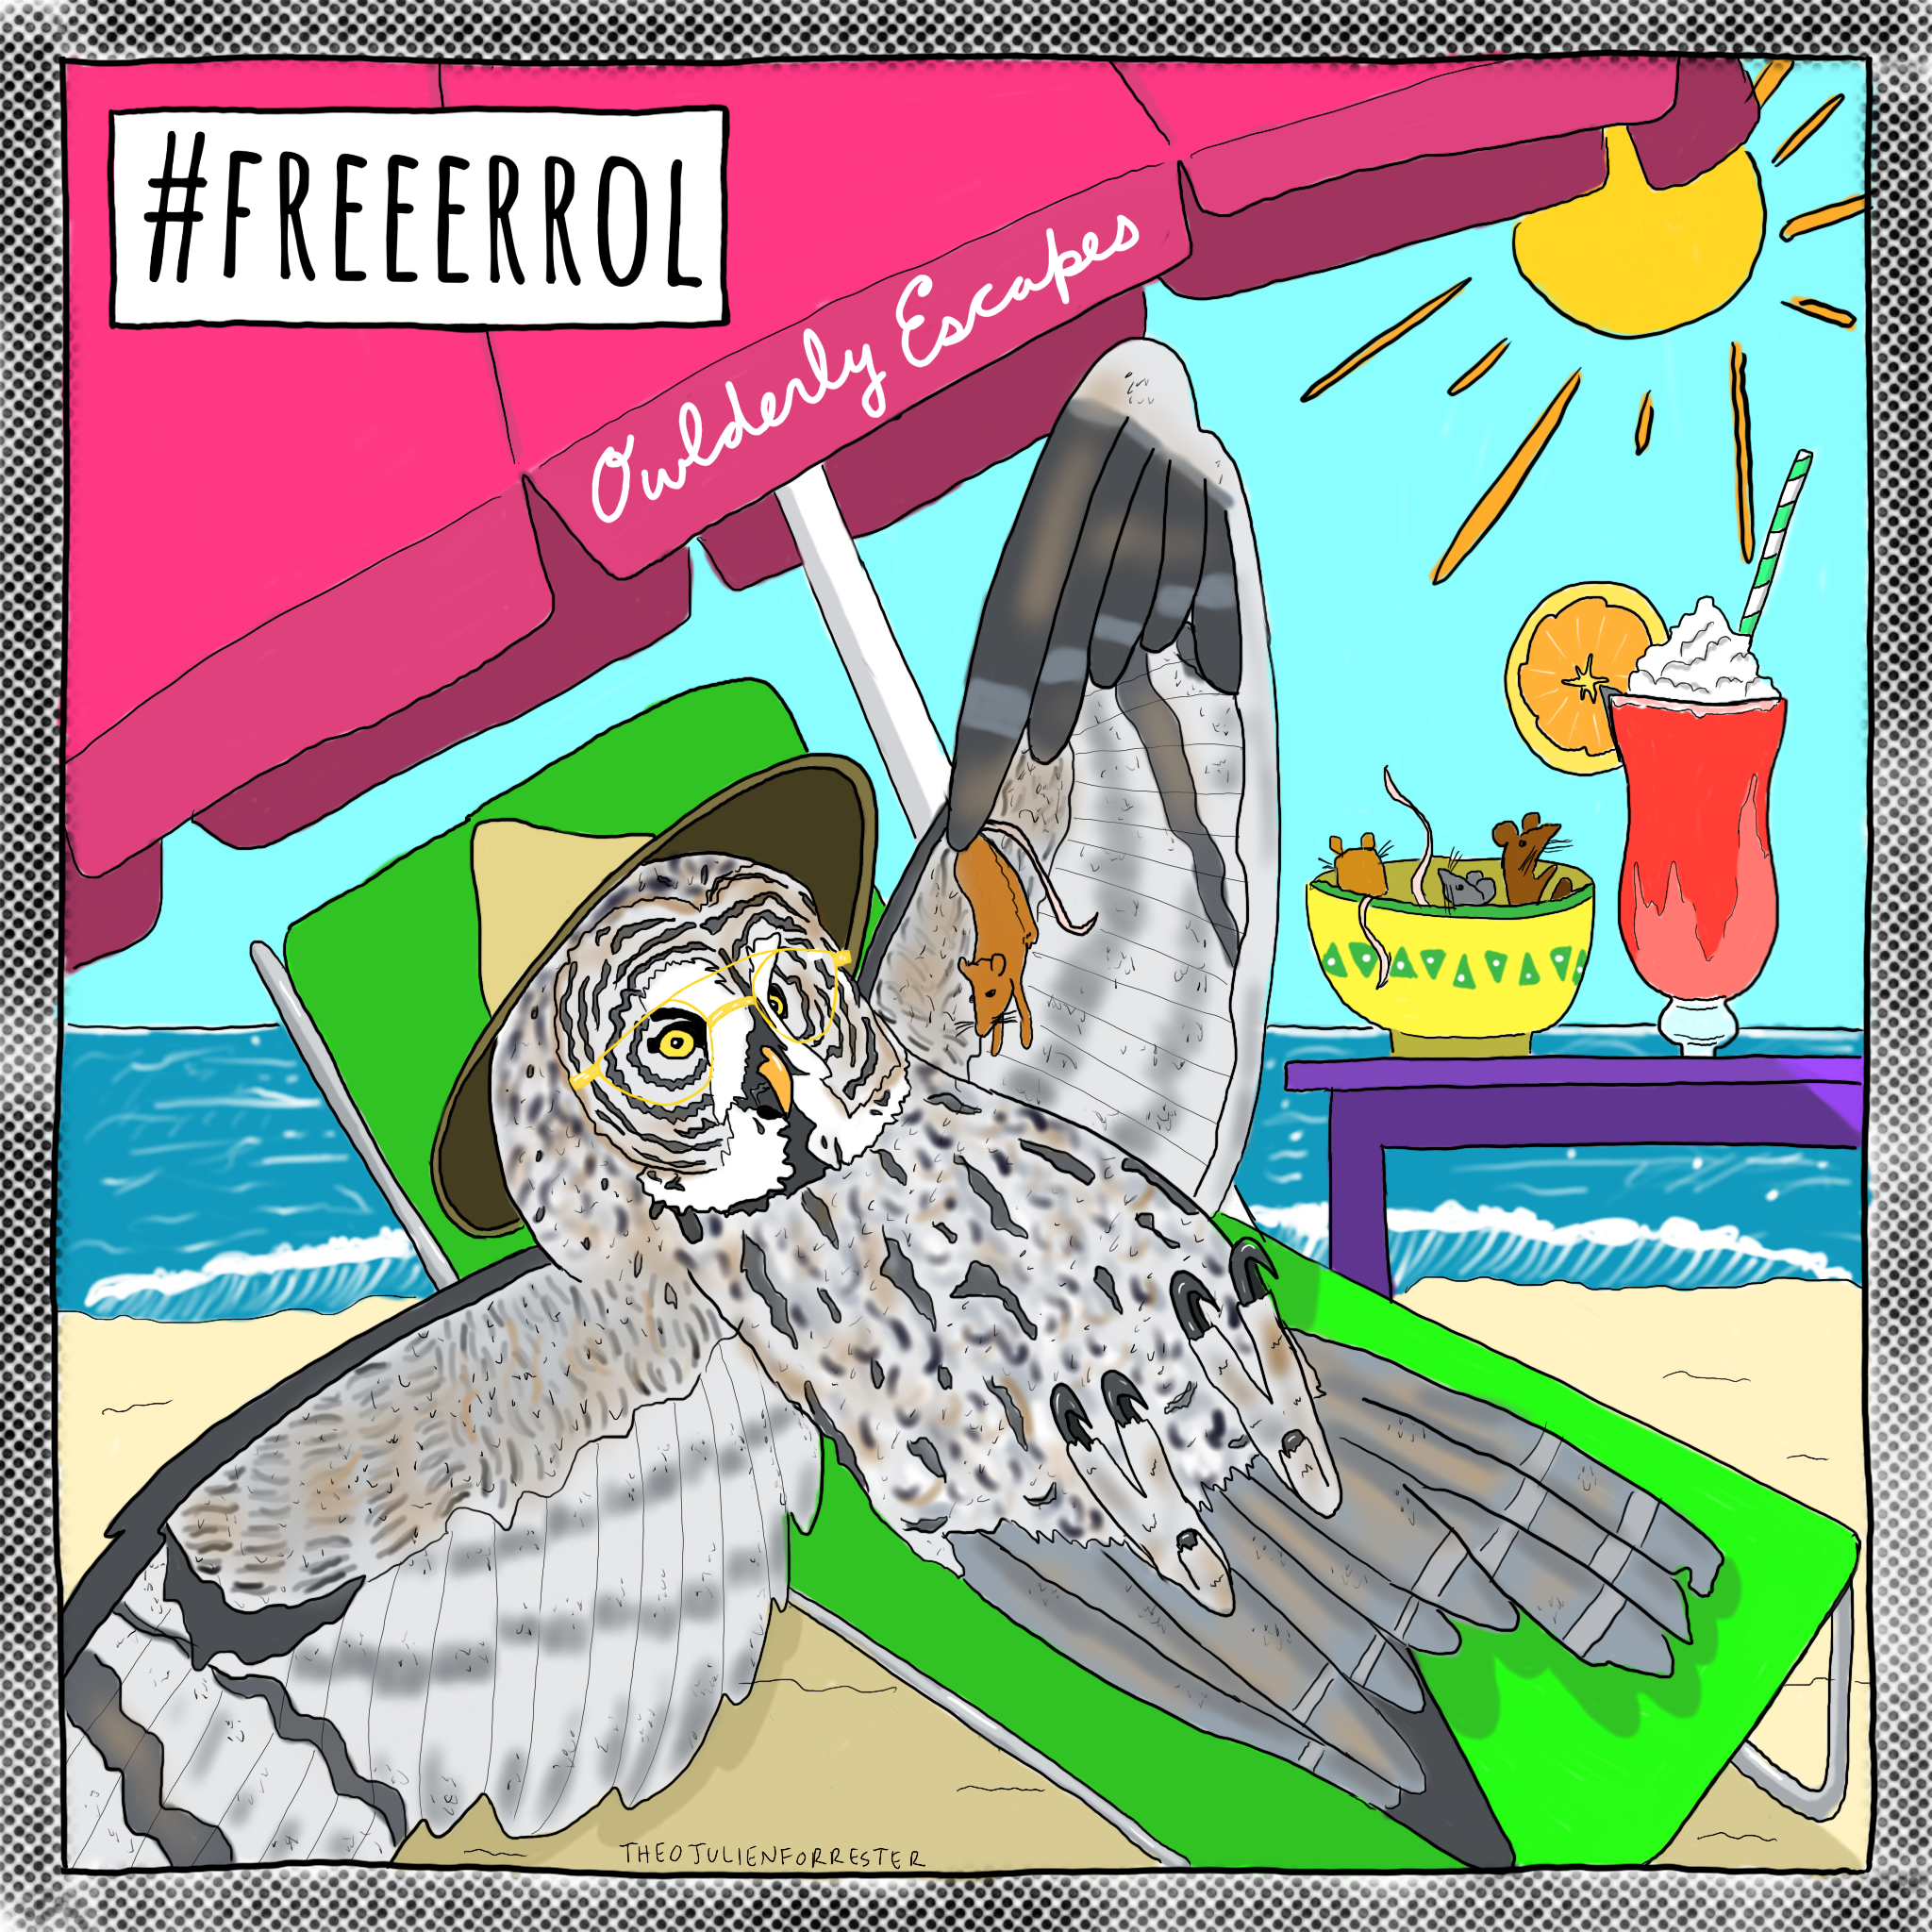 #FreeErrol: inspired by episode 15